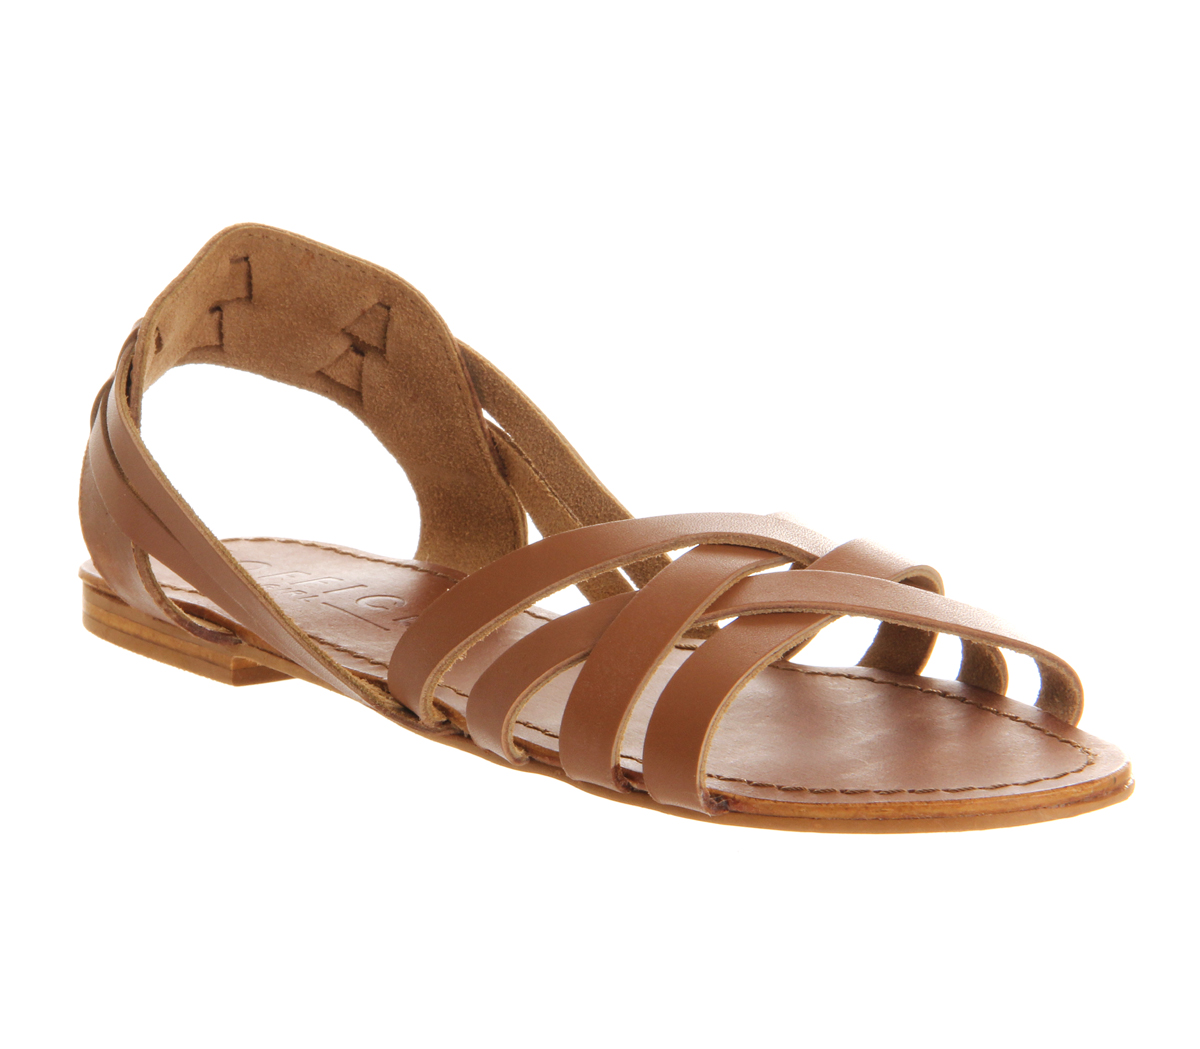 Creative Trotters Womens Mickey Sandals In Tan Soft Dull Leather